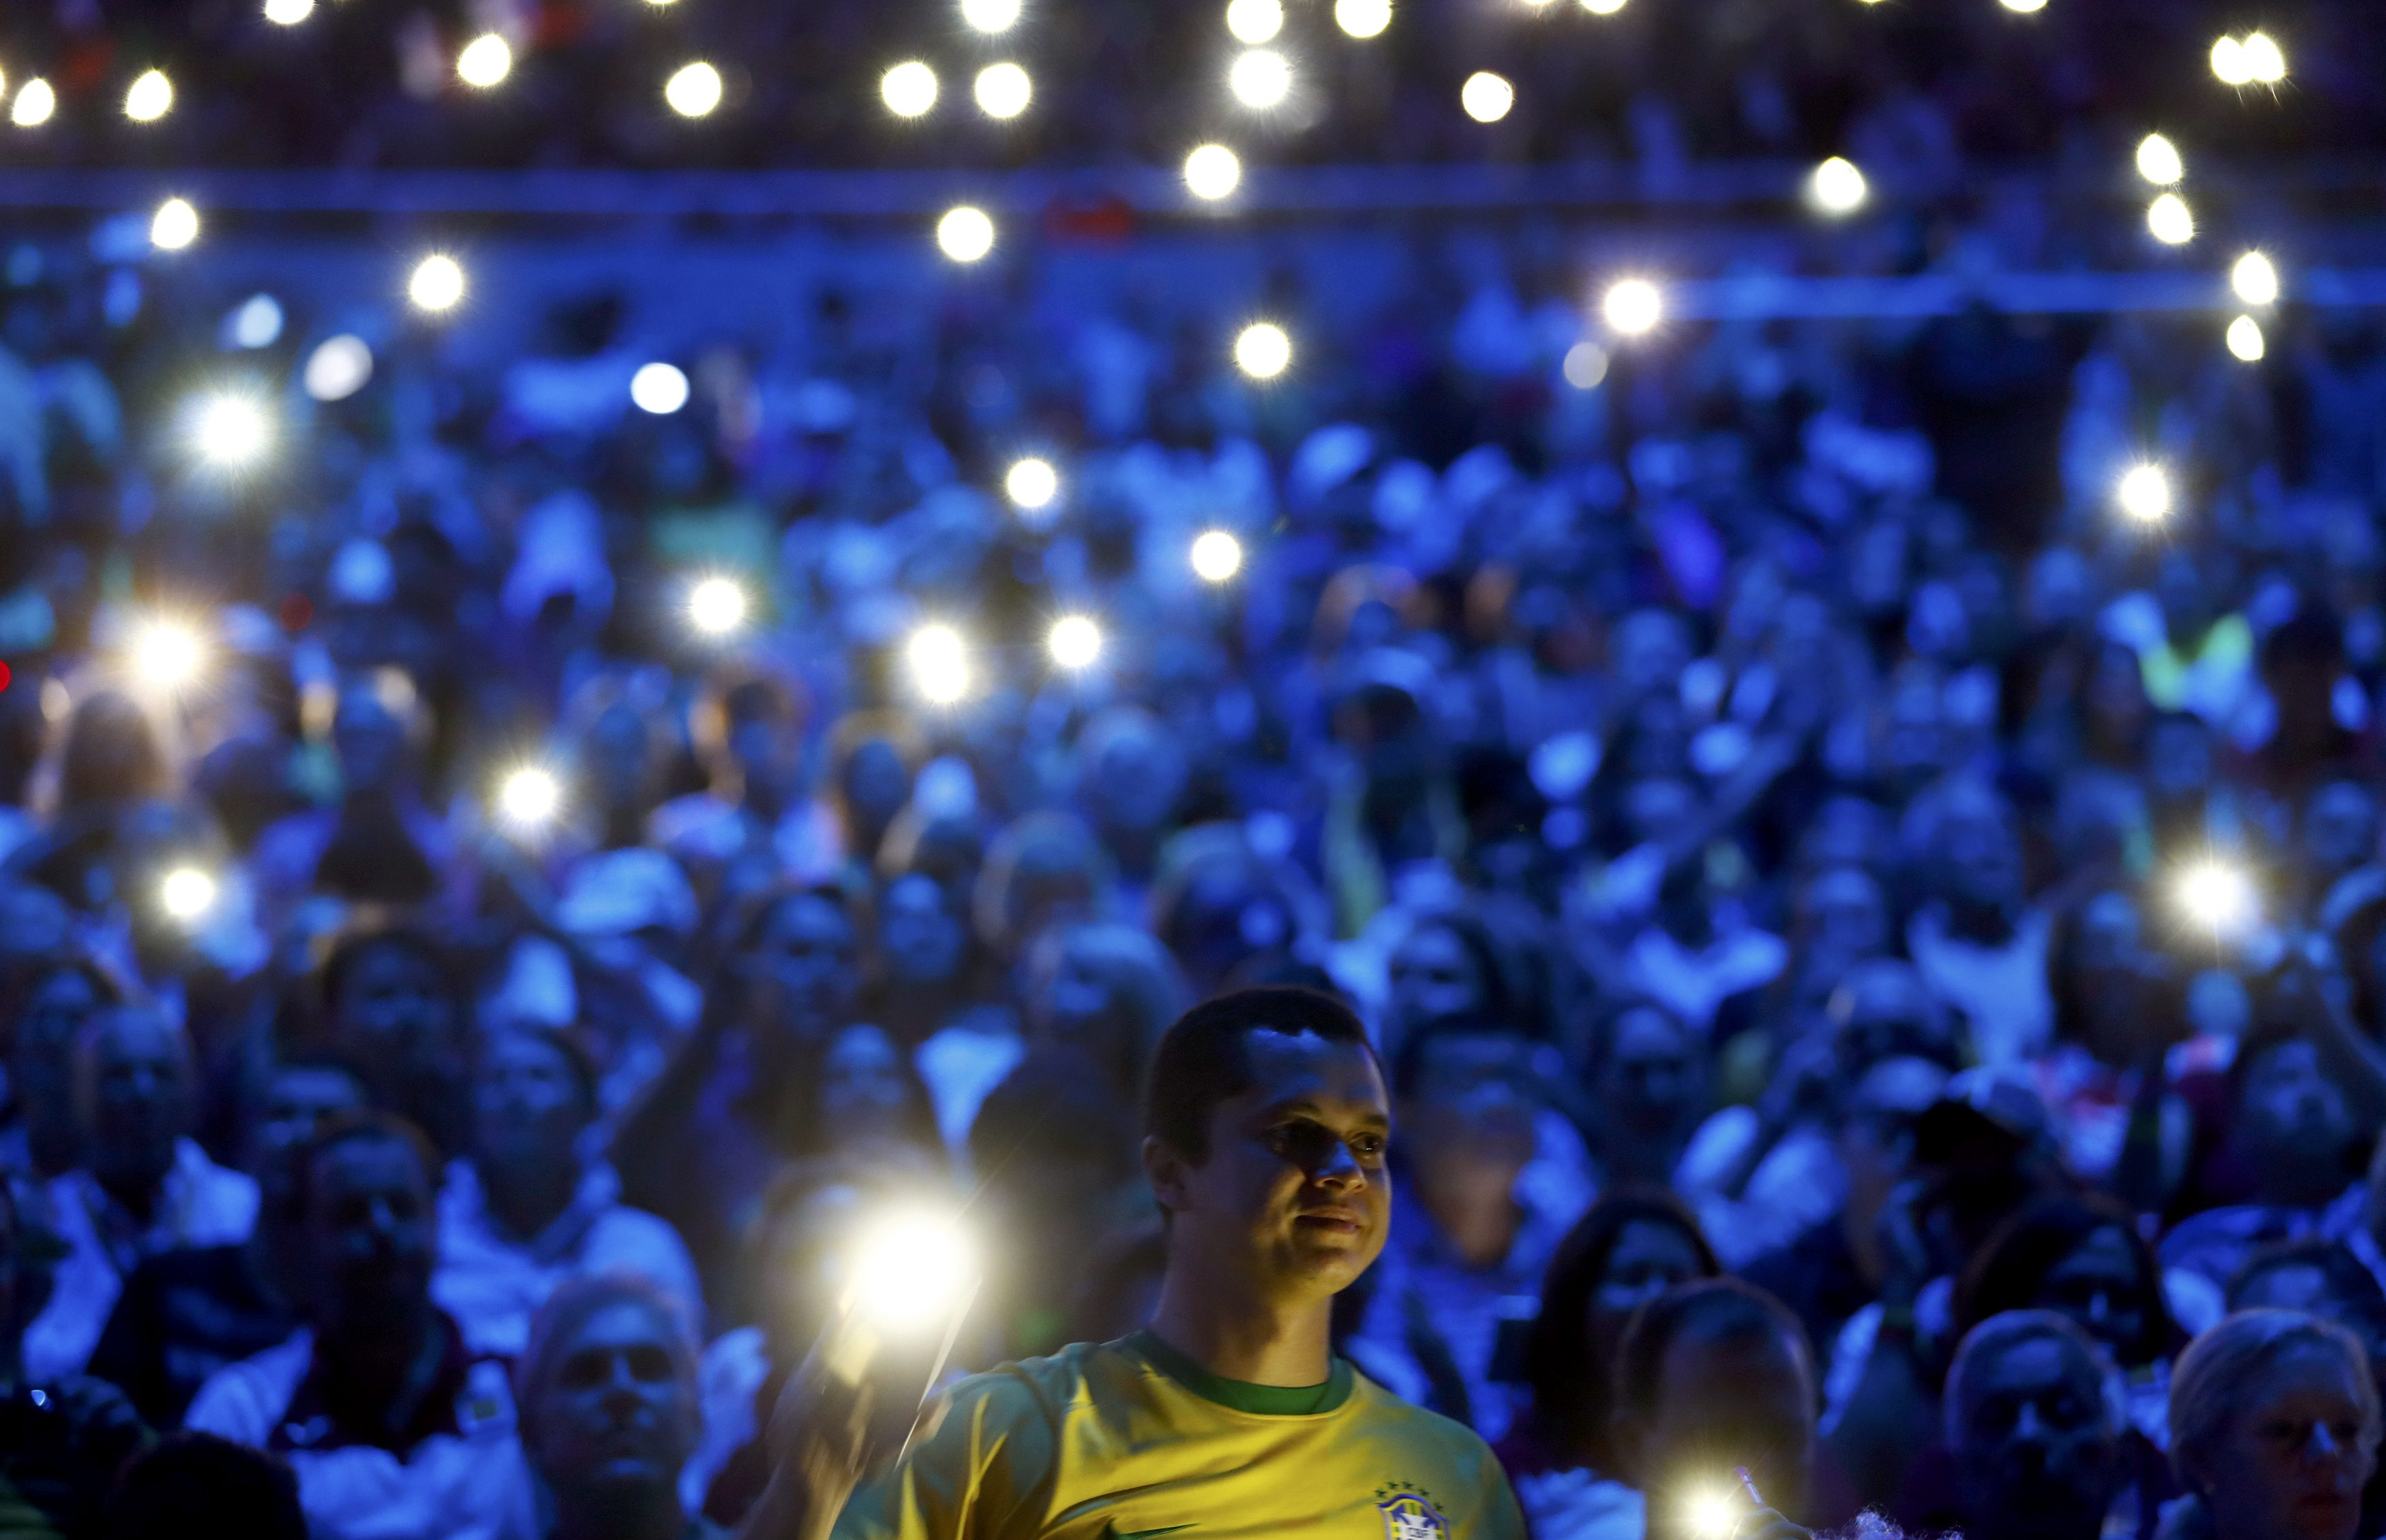 2016 Rio Olympics - Opening Ceremony - Maracana - Rio de Janeiro, Brazil - 05/08/2016. Spectators use their mobile phones for illumination. REUTERS/Kai Pfaffenbach FOR EDITORIAL USE ONLY. NOT FOR SALE FOR MARKETING OR ADVERTISING CAMPAIGNS. TPX IMAGES OF THE DAY